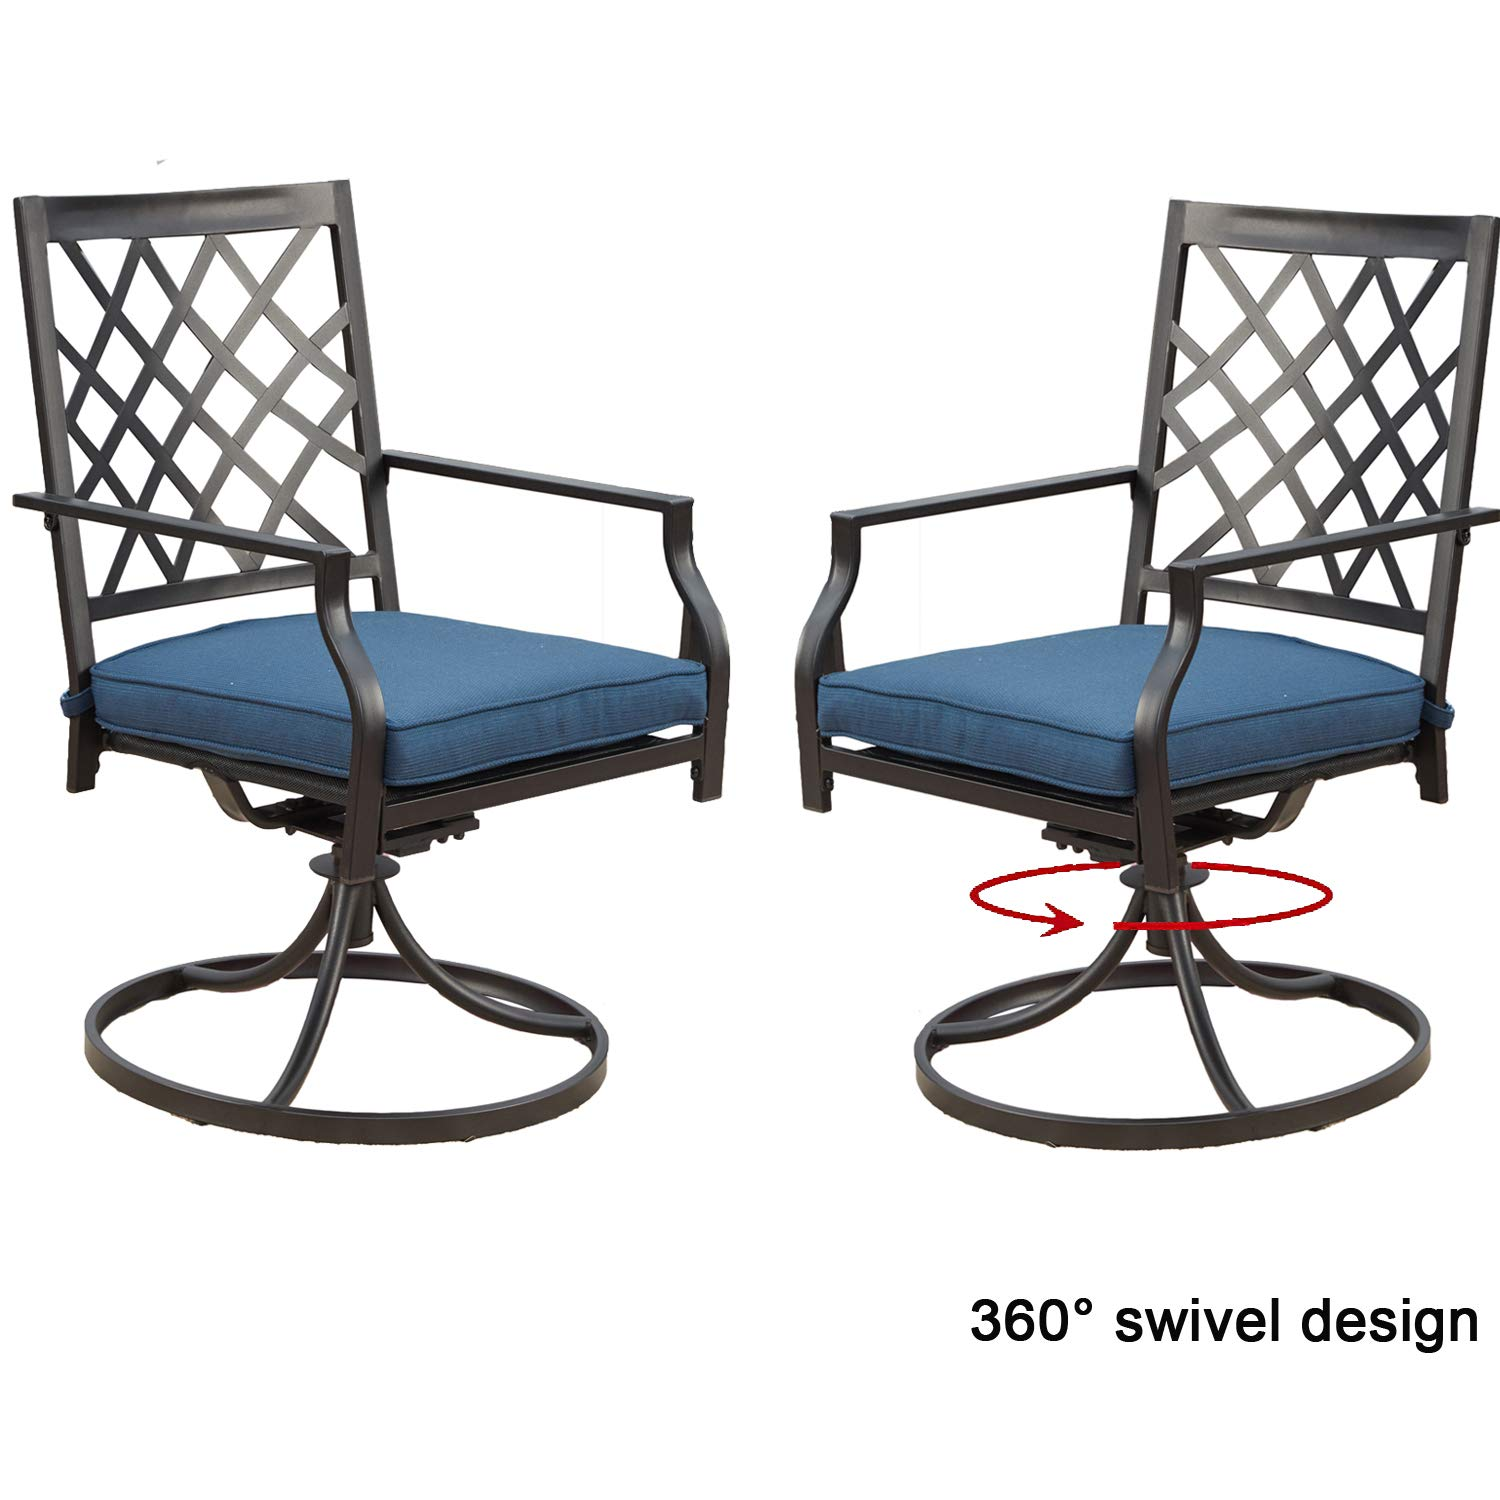 Top Space Outdoor Swivel Chairs Patio Rocker Lounge Chair Metal Bistro Set Club Arm Chair Dining Furniture for Garden Backyard (Set of 2, Blue) (2 Chairs)